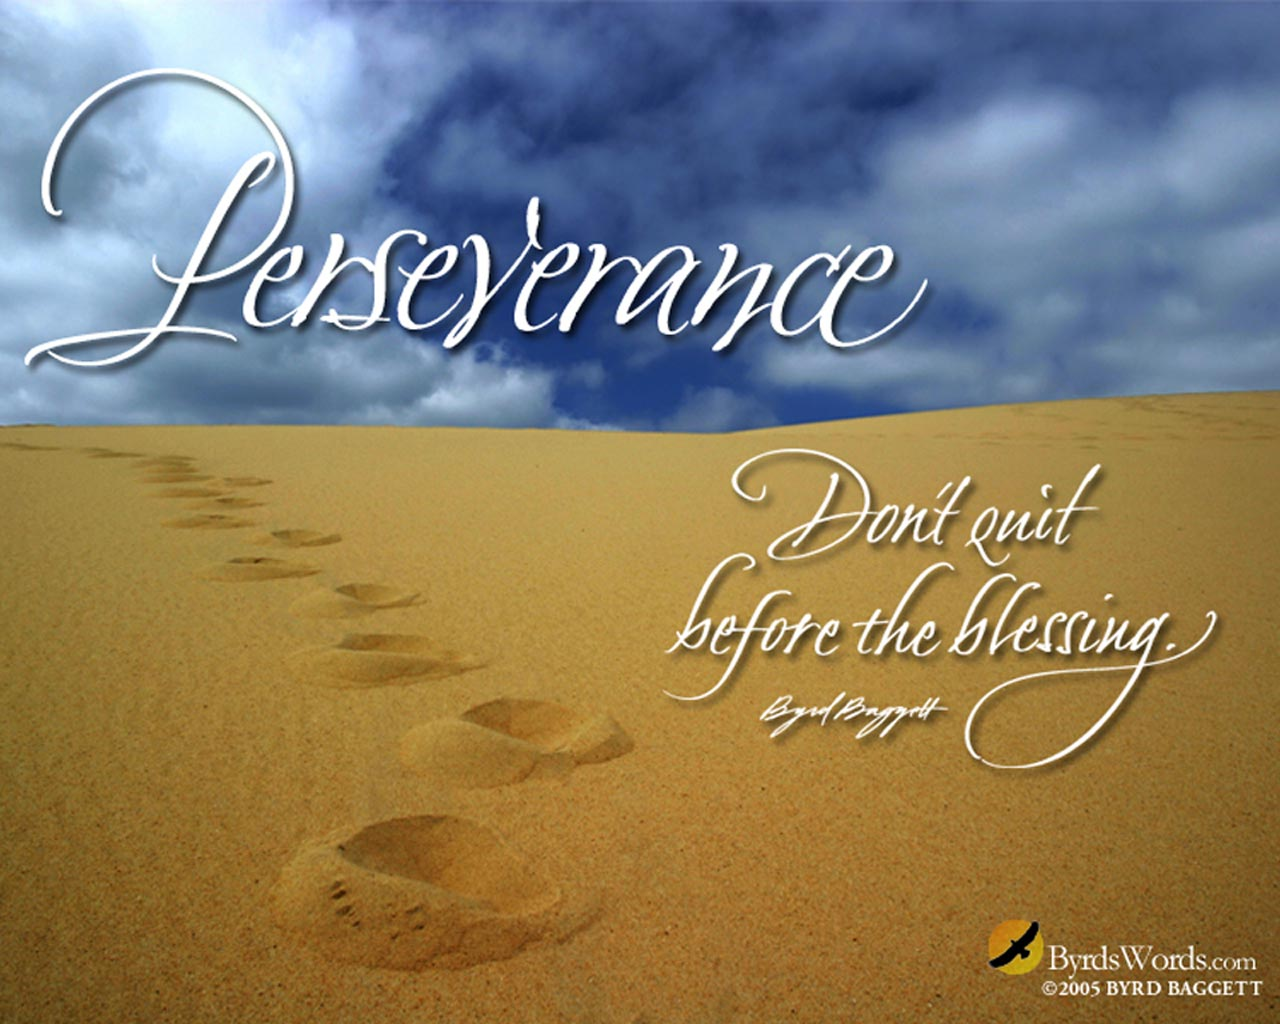 Perservance Quotes: Future Business Of 21st Century: PERSEVERANCE QUOTES